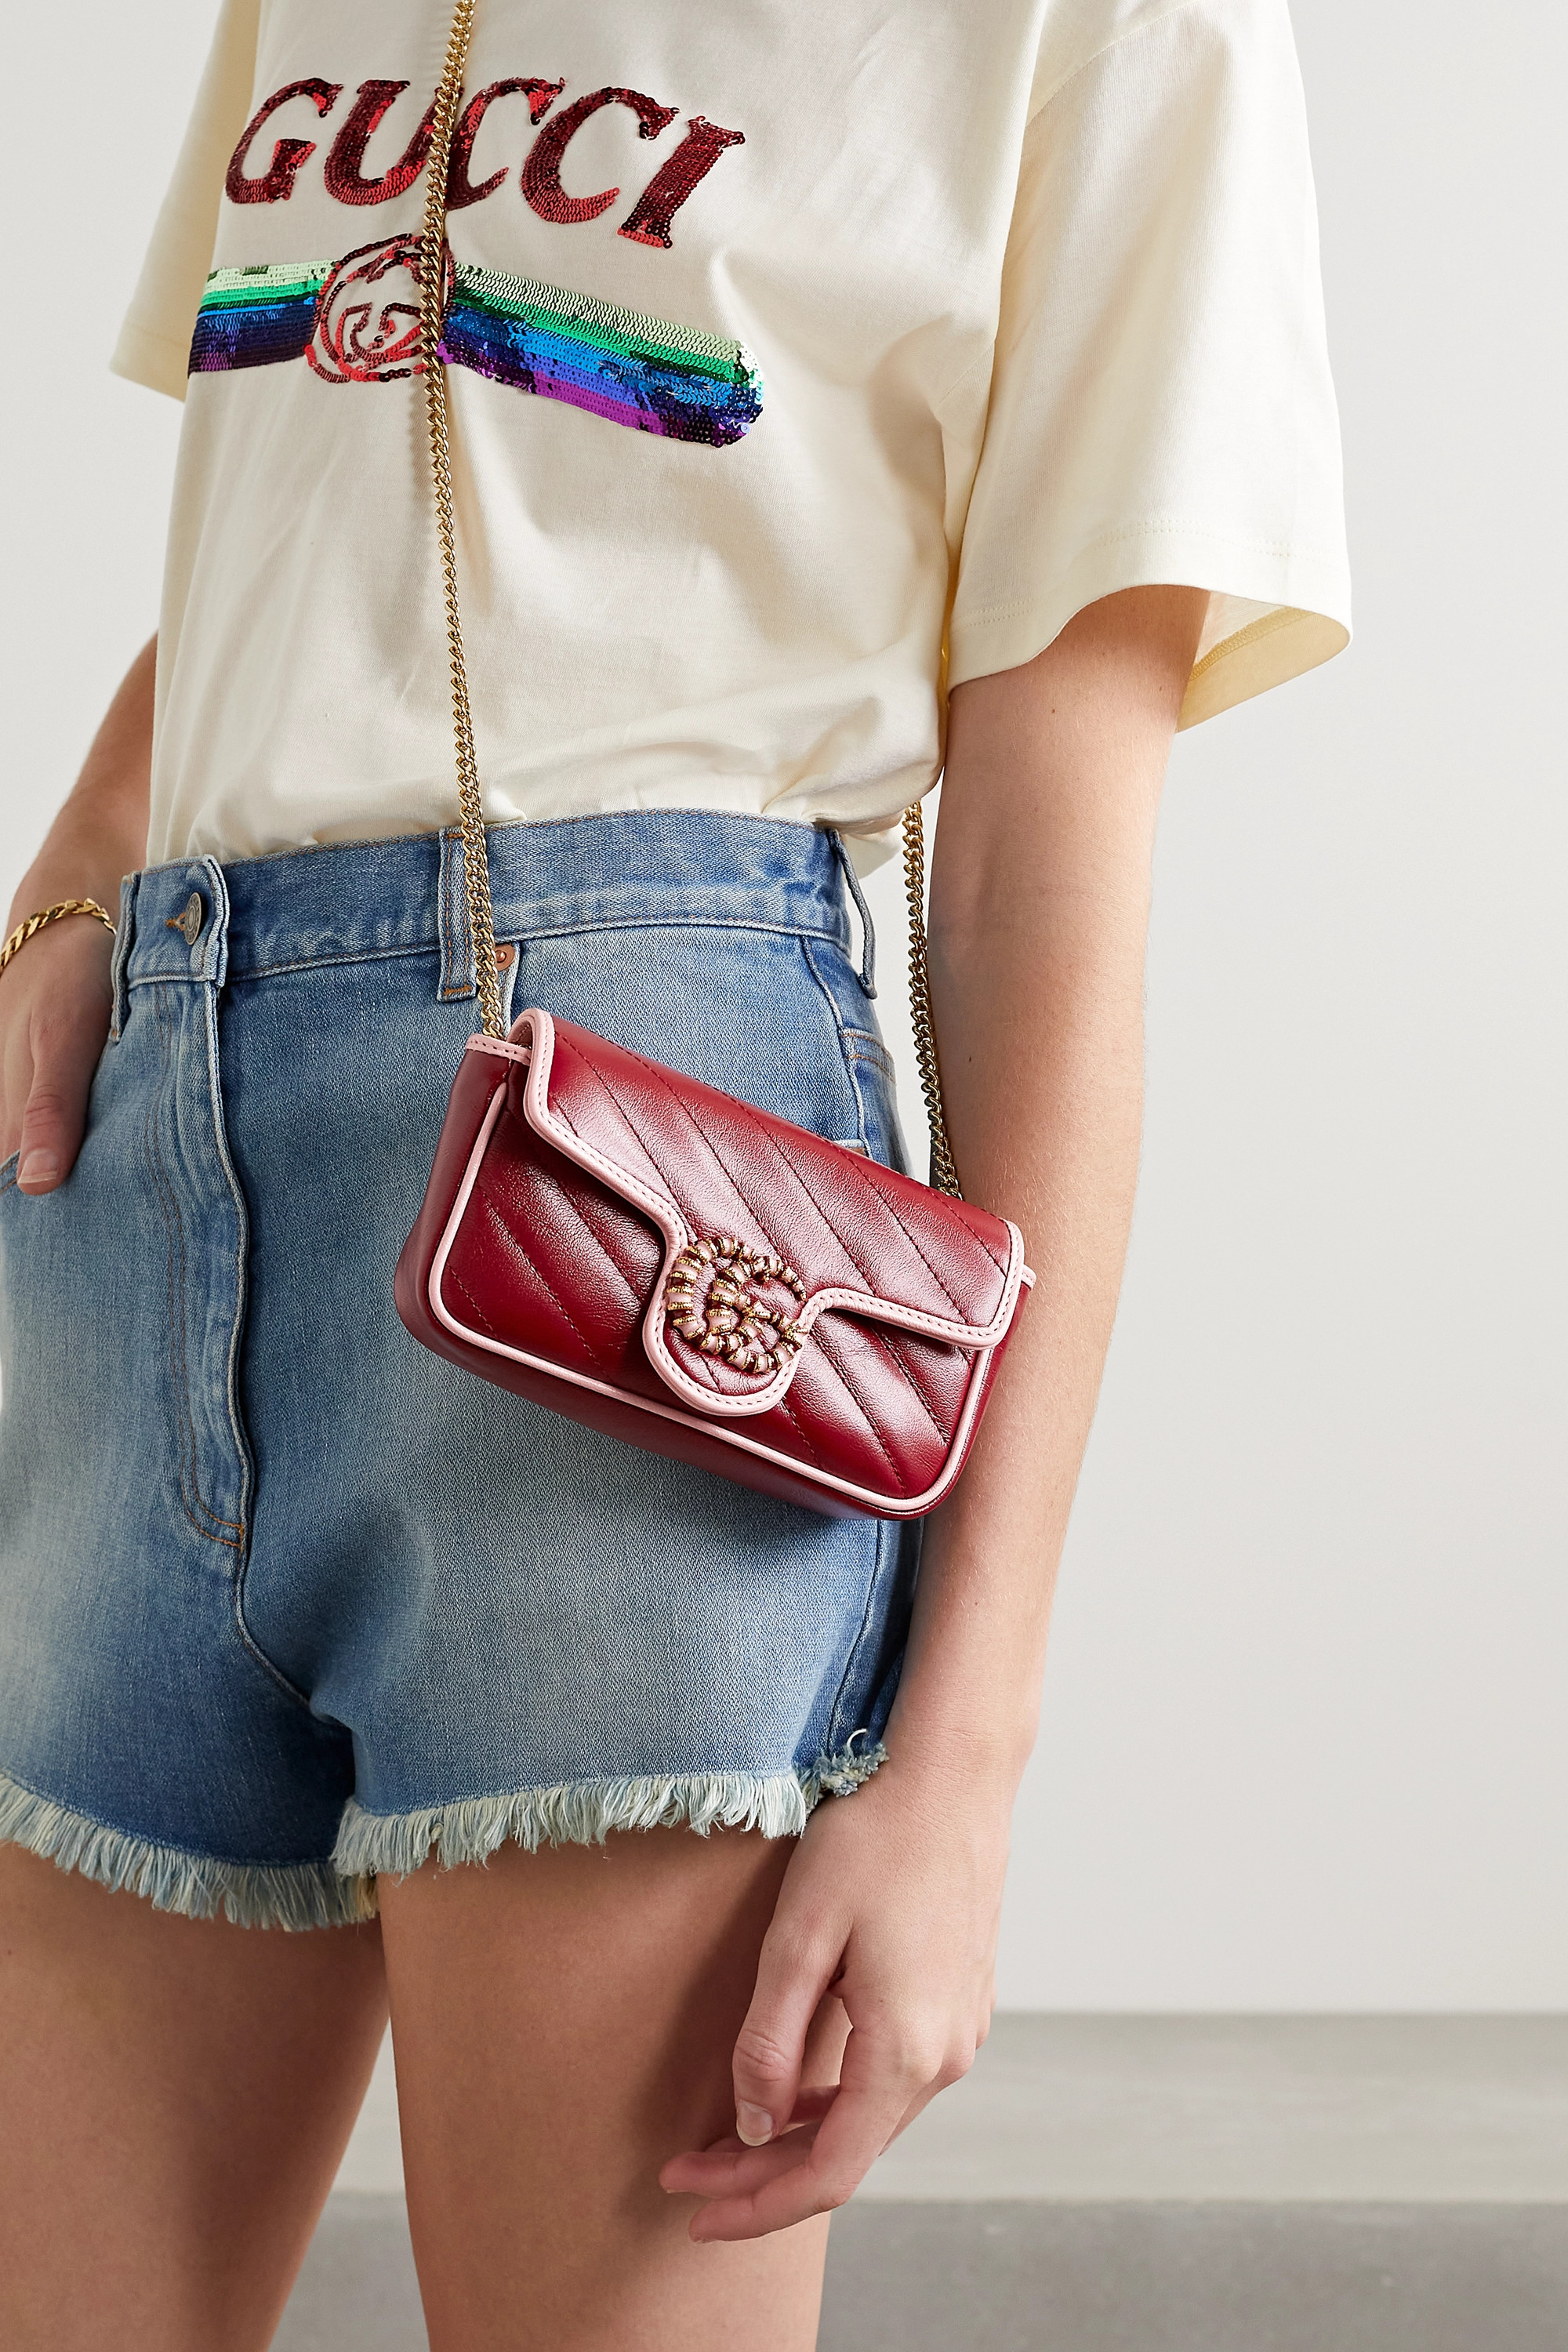 Gucci GG Marmont quilted two-tone leather shoulder bag